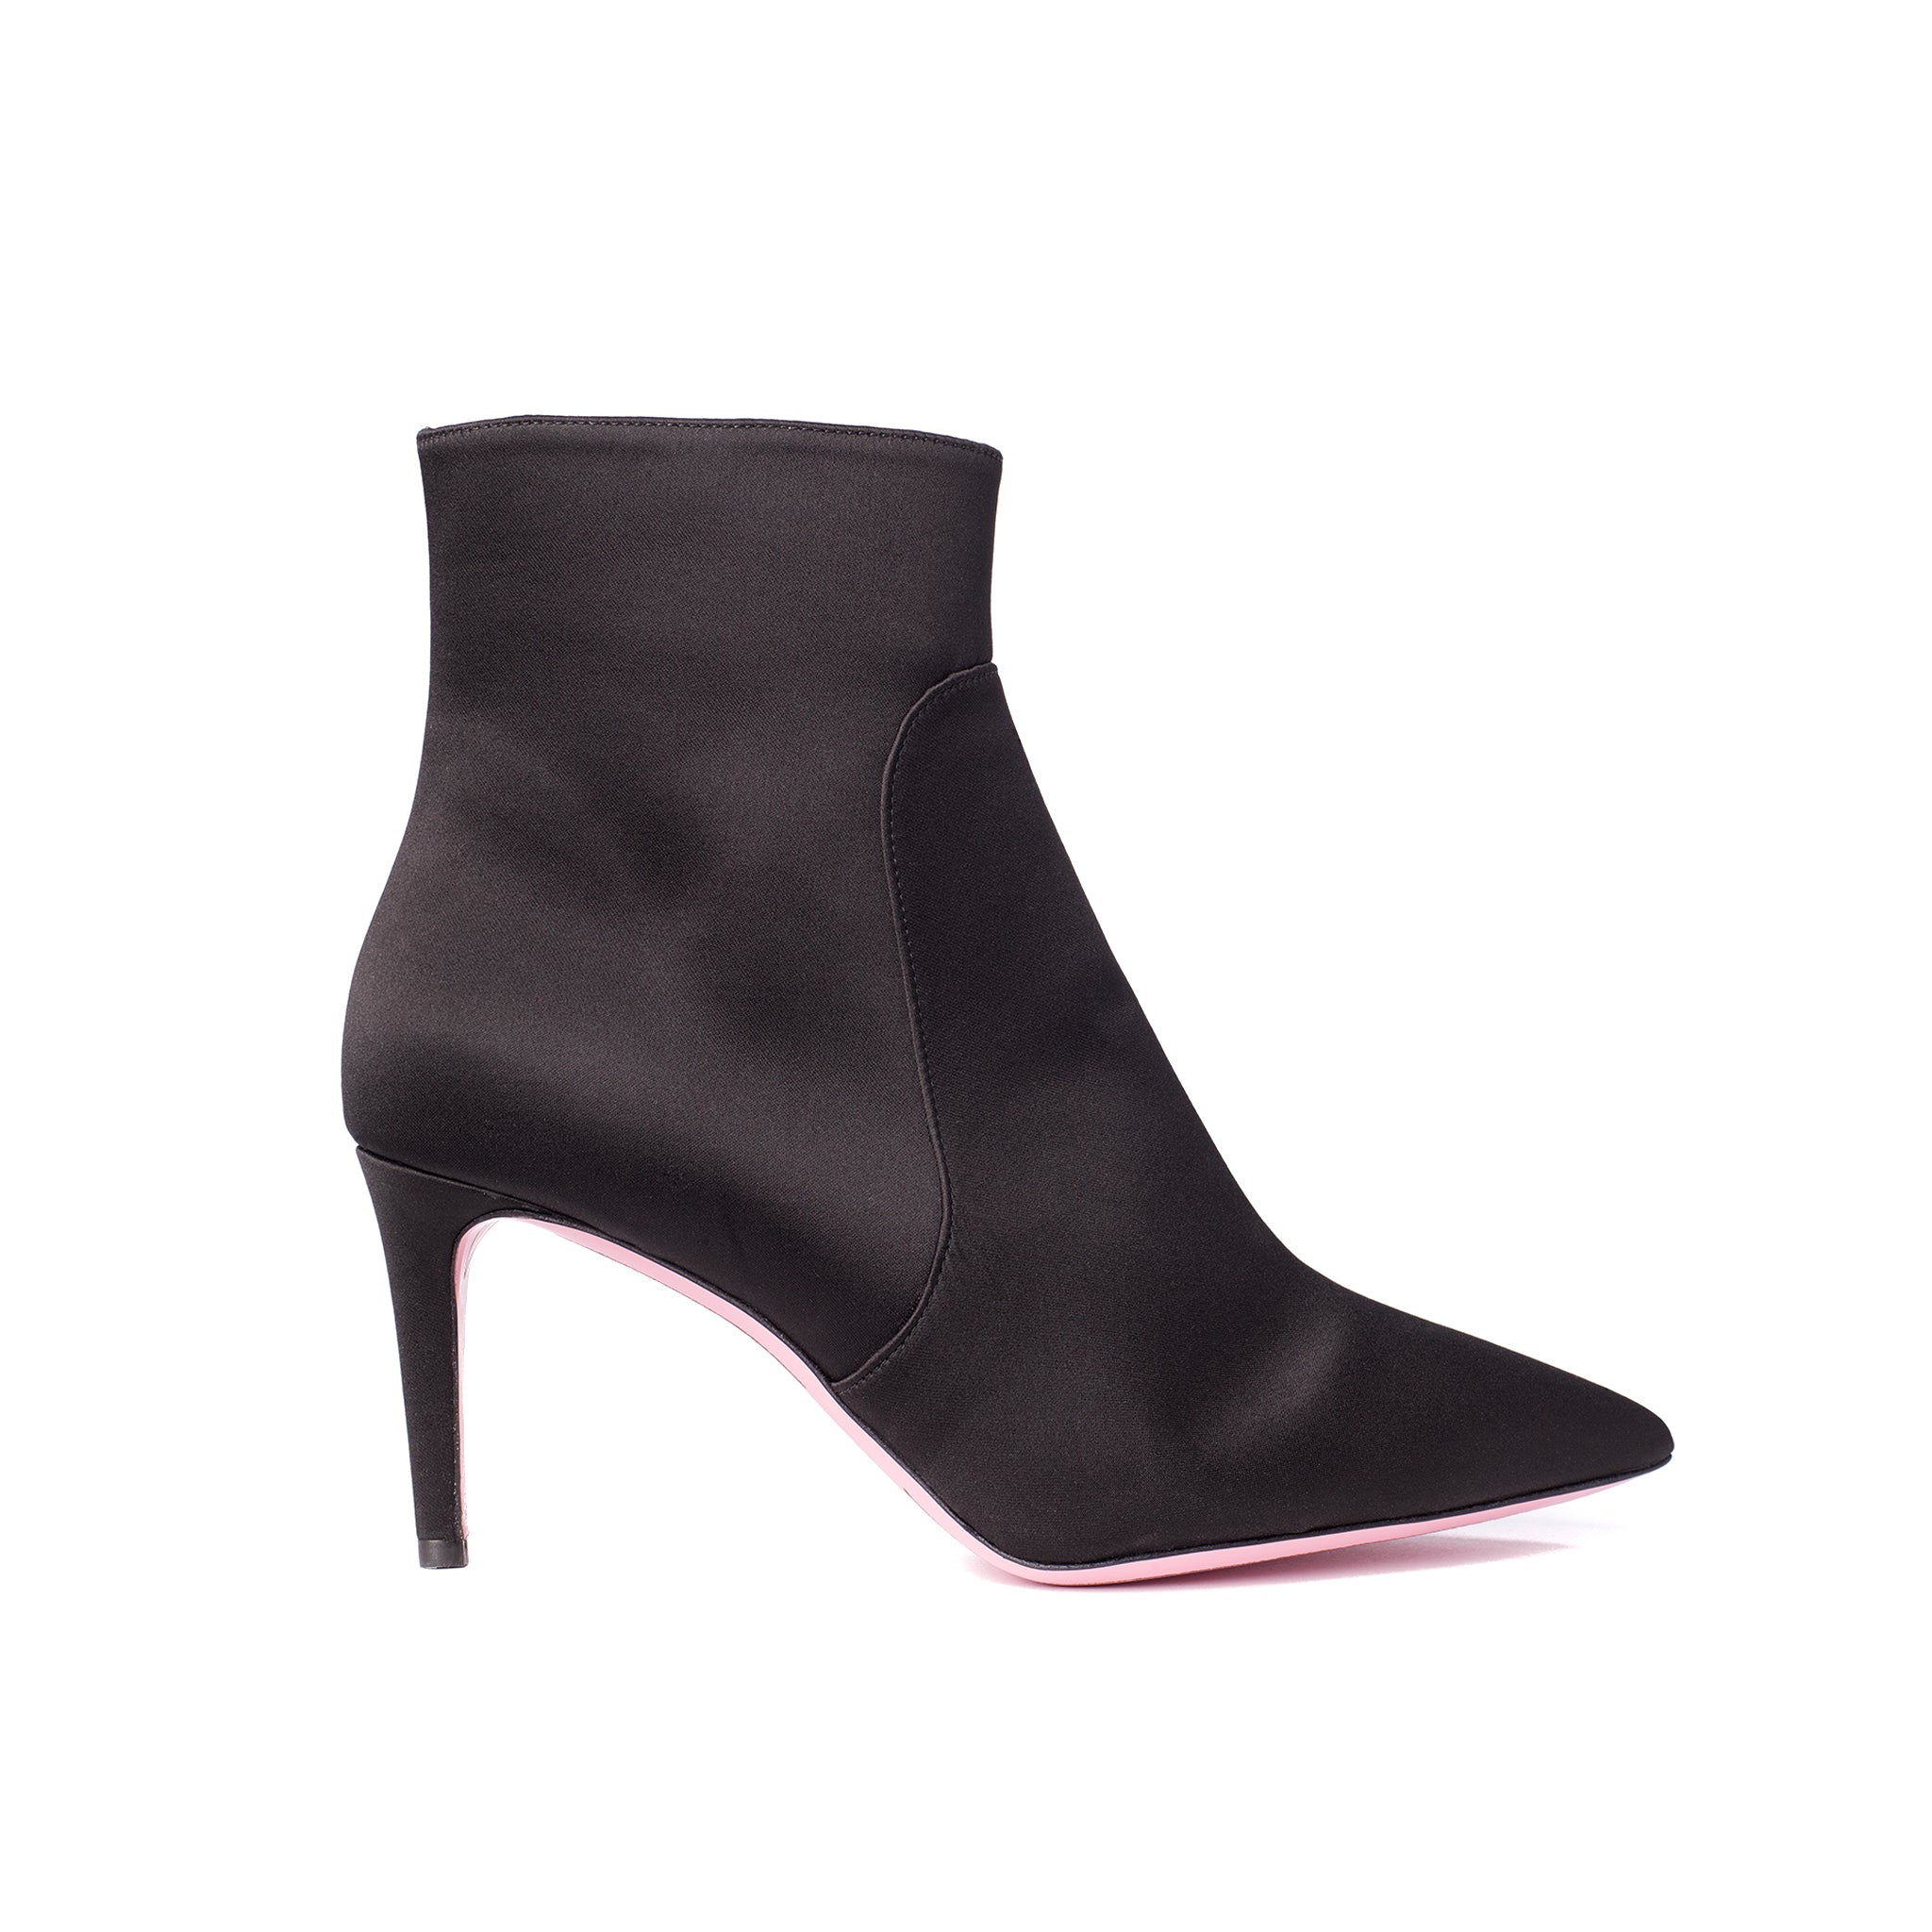 Phare  pointed claasic high heel boot in black silk satin, made in Italy